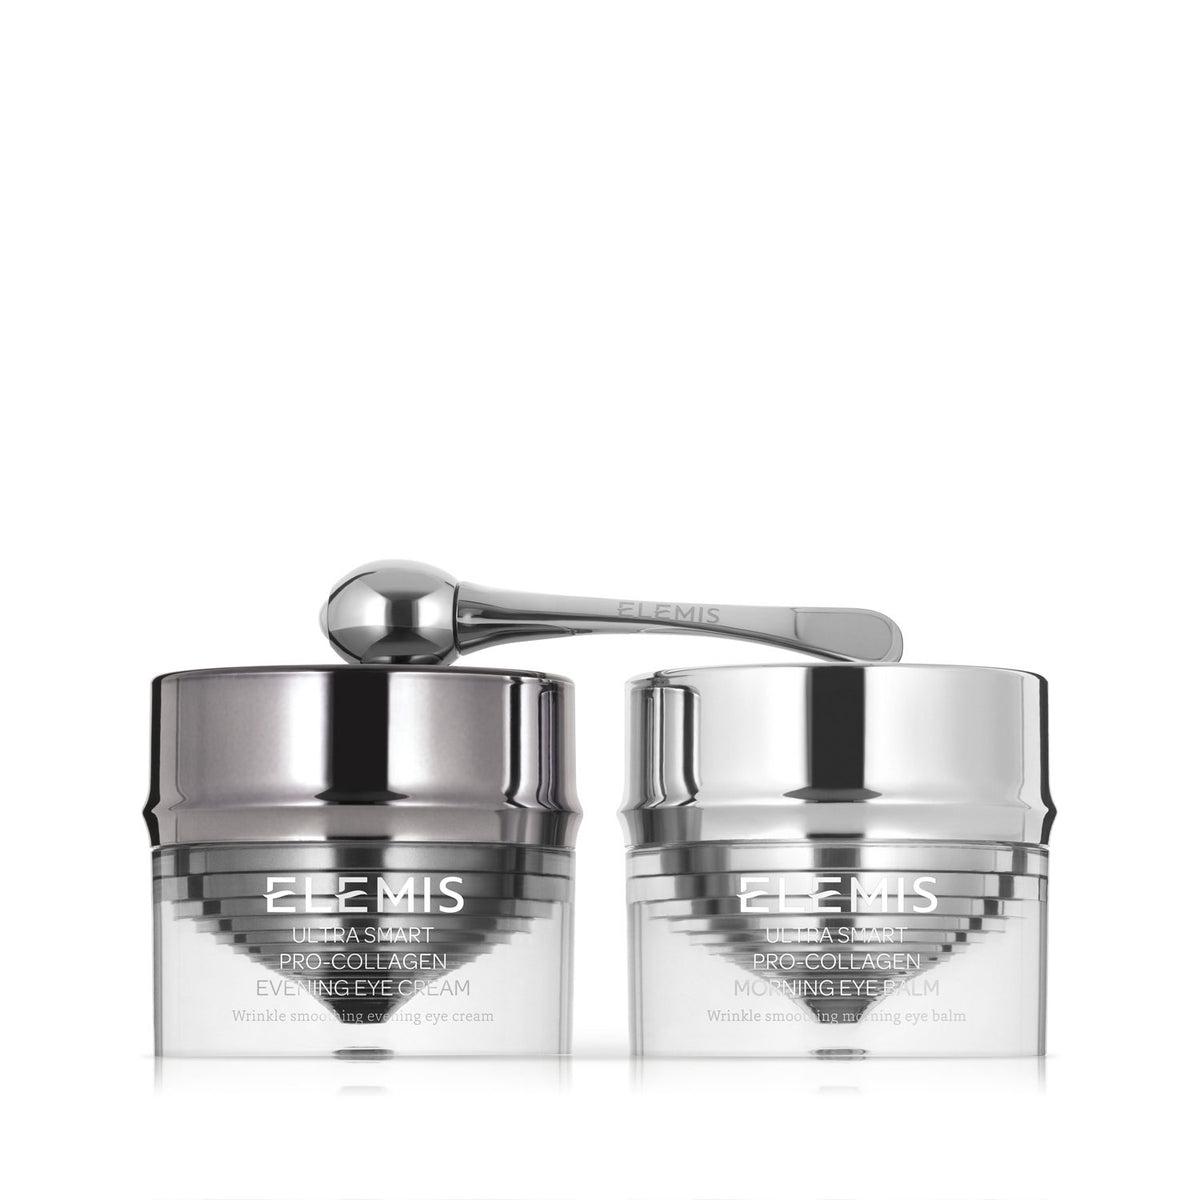 ELEMIS | ULTRA SMART Pro-Collagen Eye Treatment Duo | Katies Beauty Kitchen